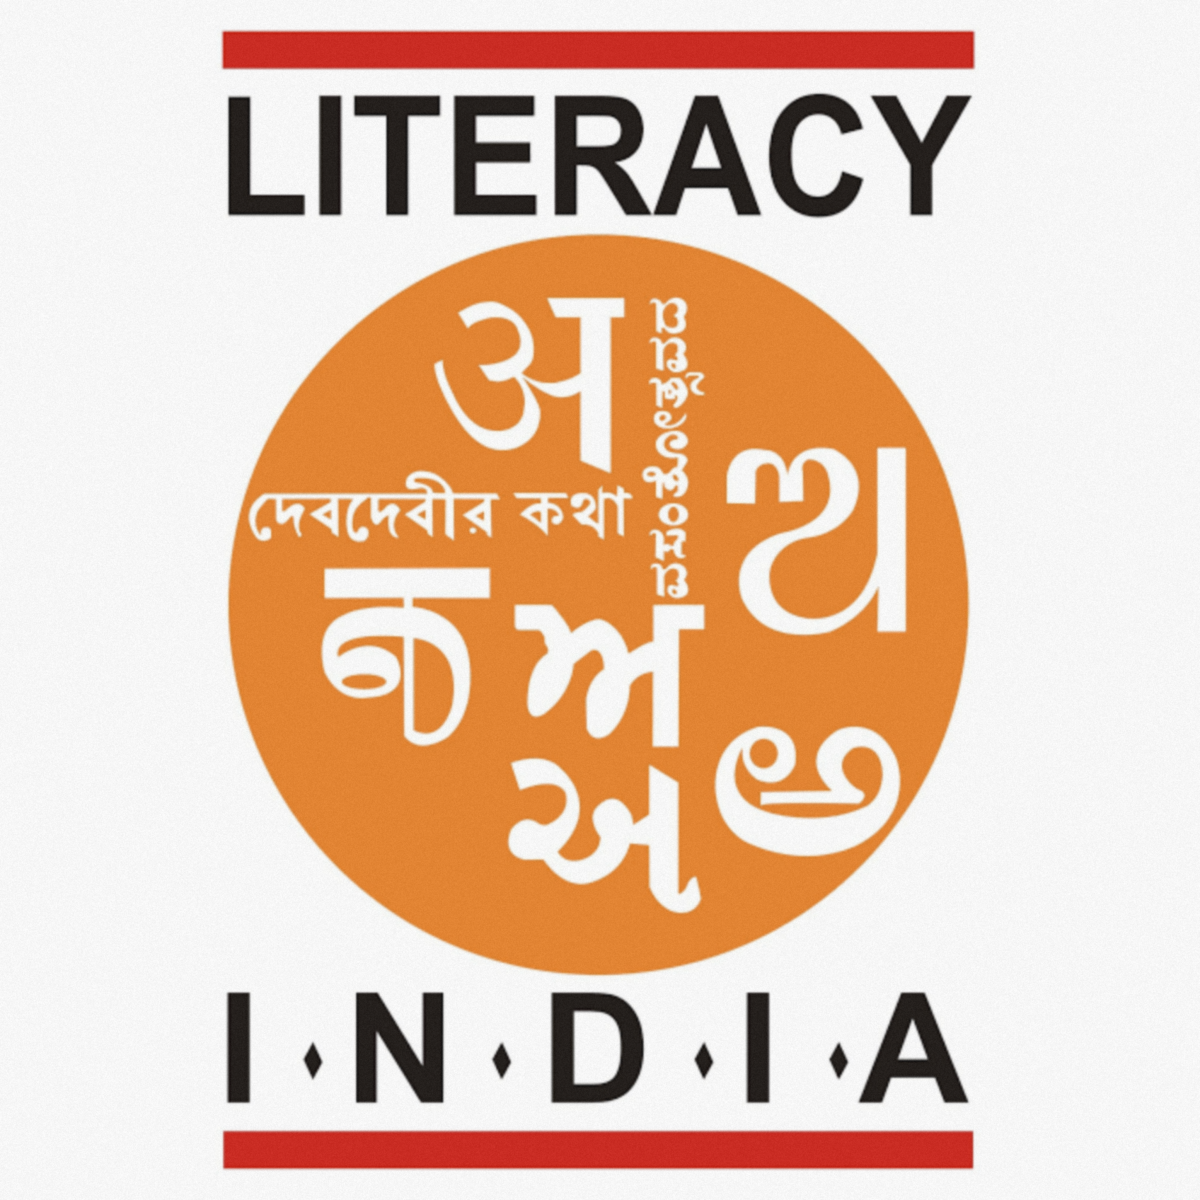 literacy-a-bridge-from-misery-to-hope